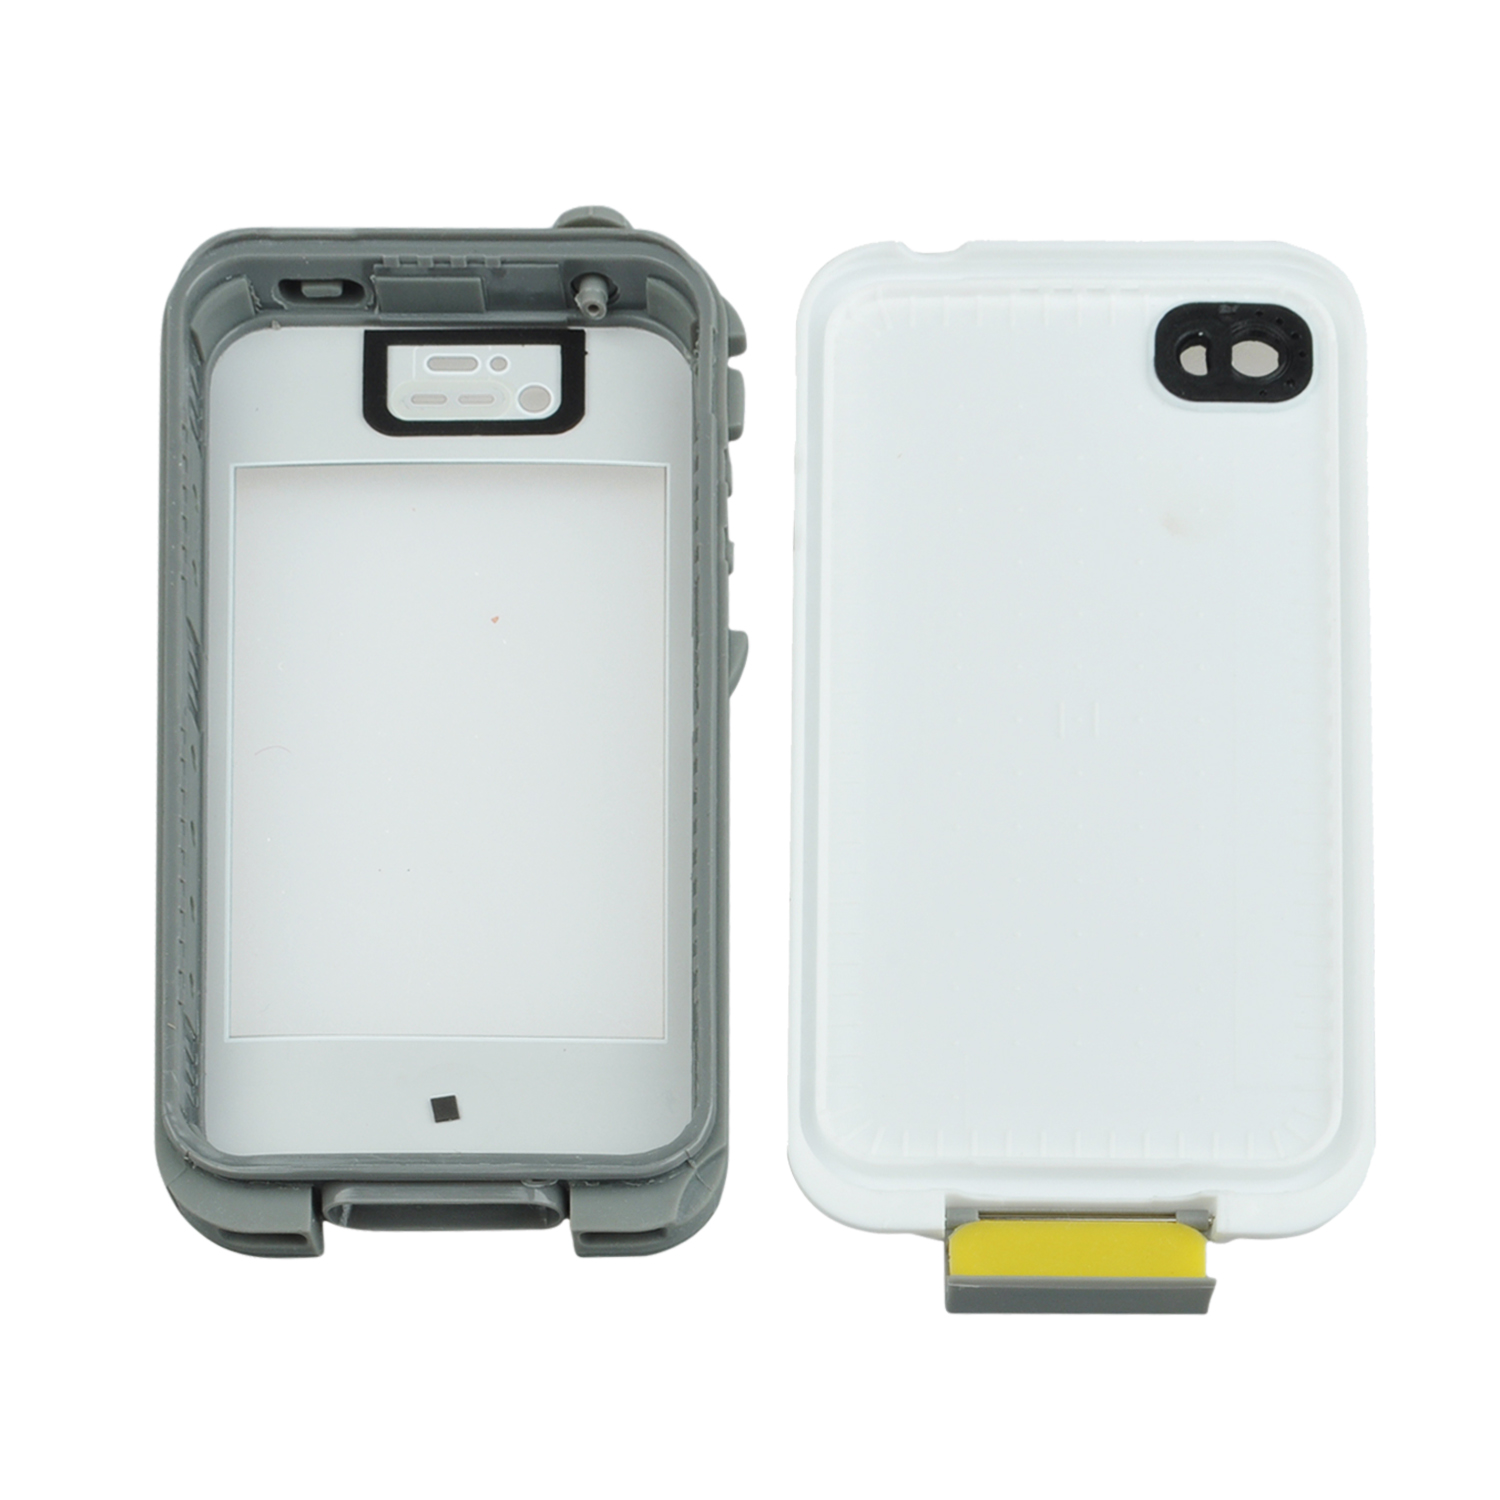 Red Pepper Waterproof Case Cover For Iphone 4S White